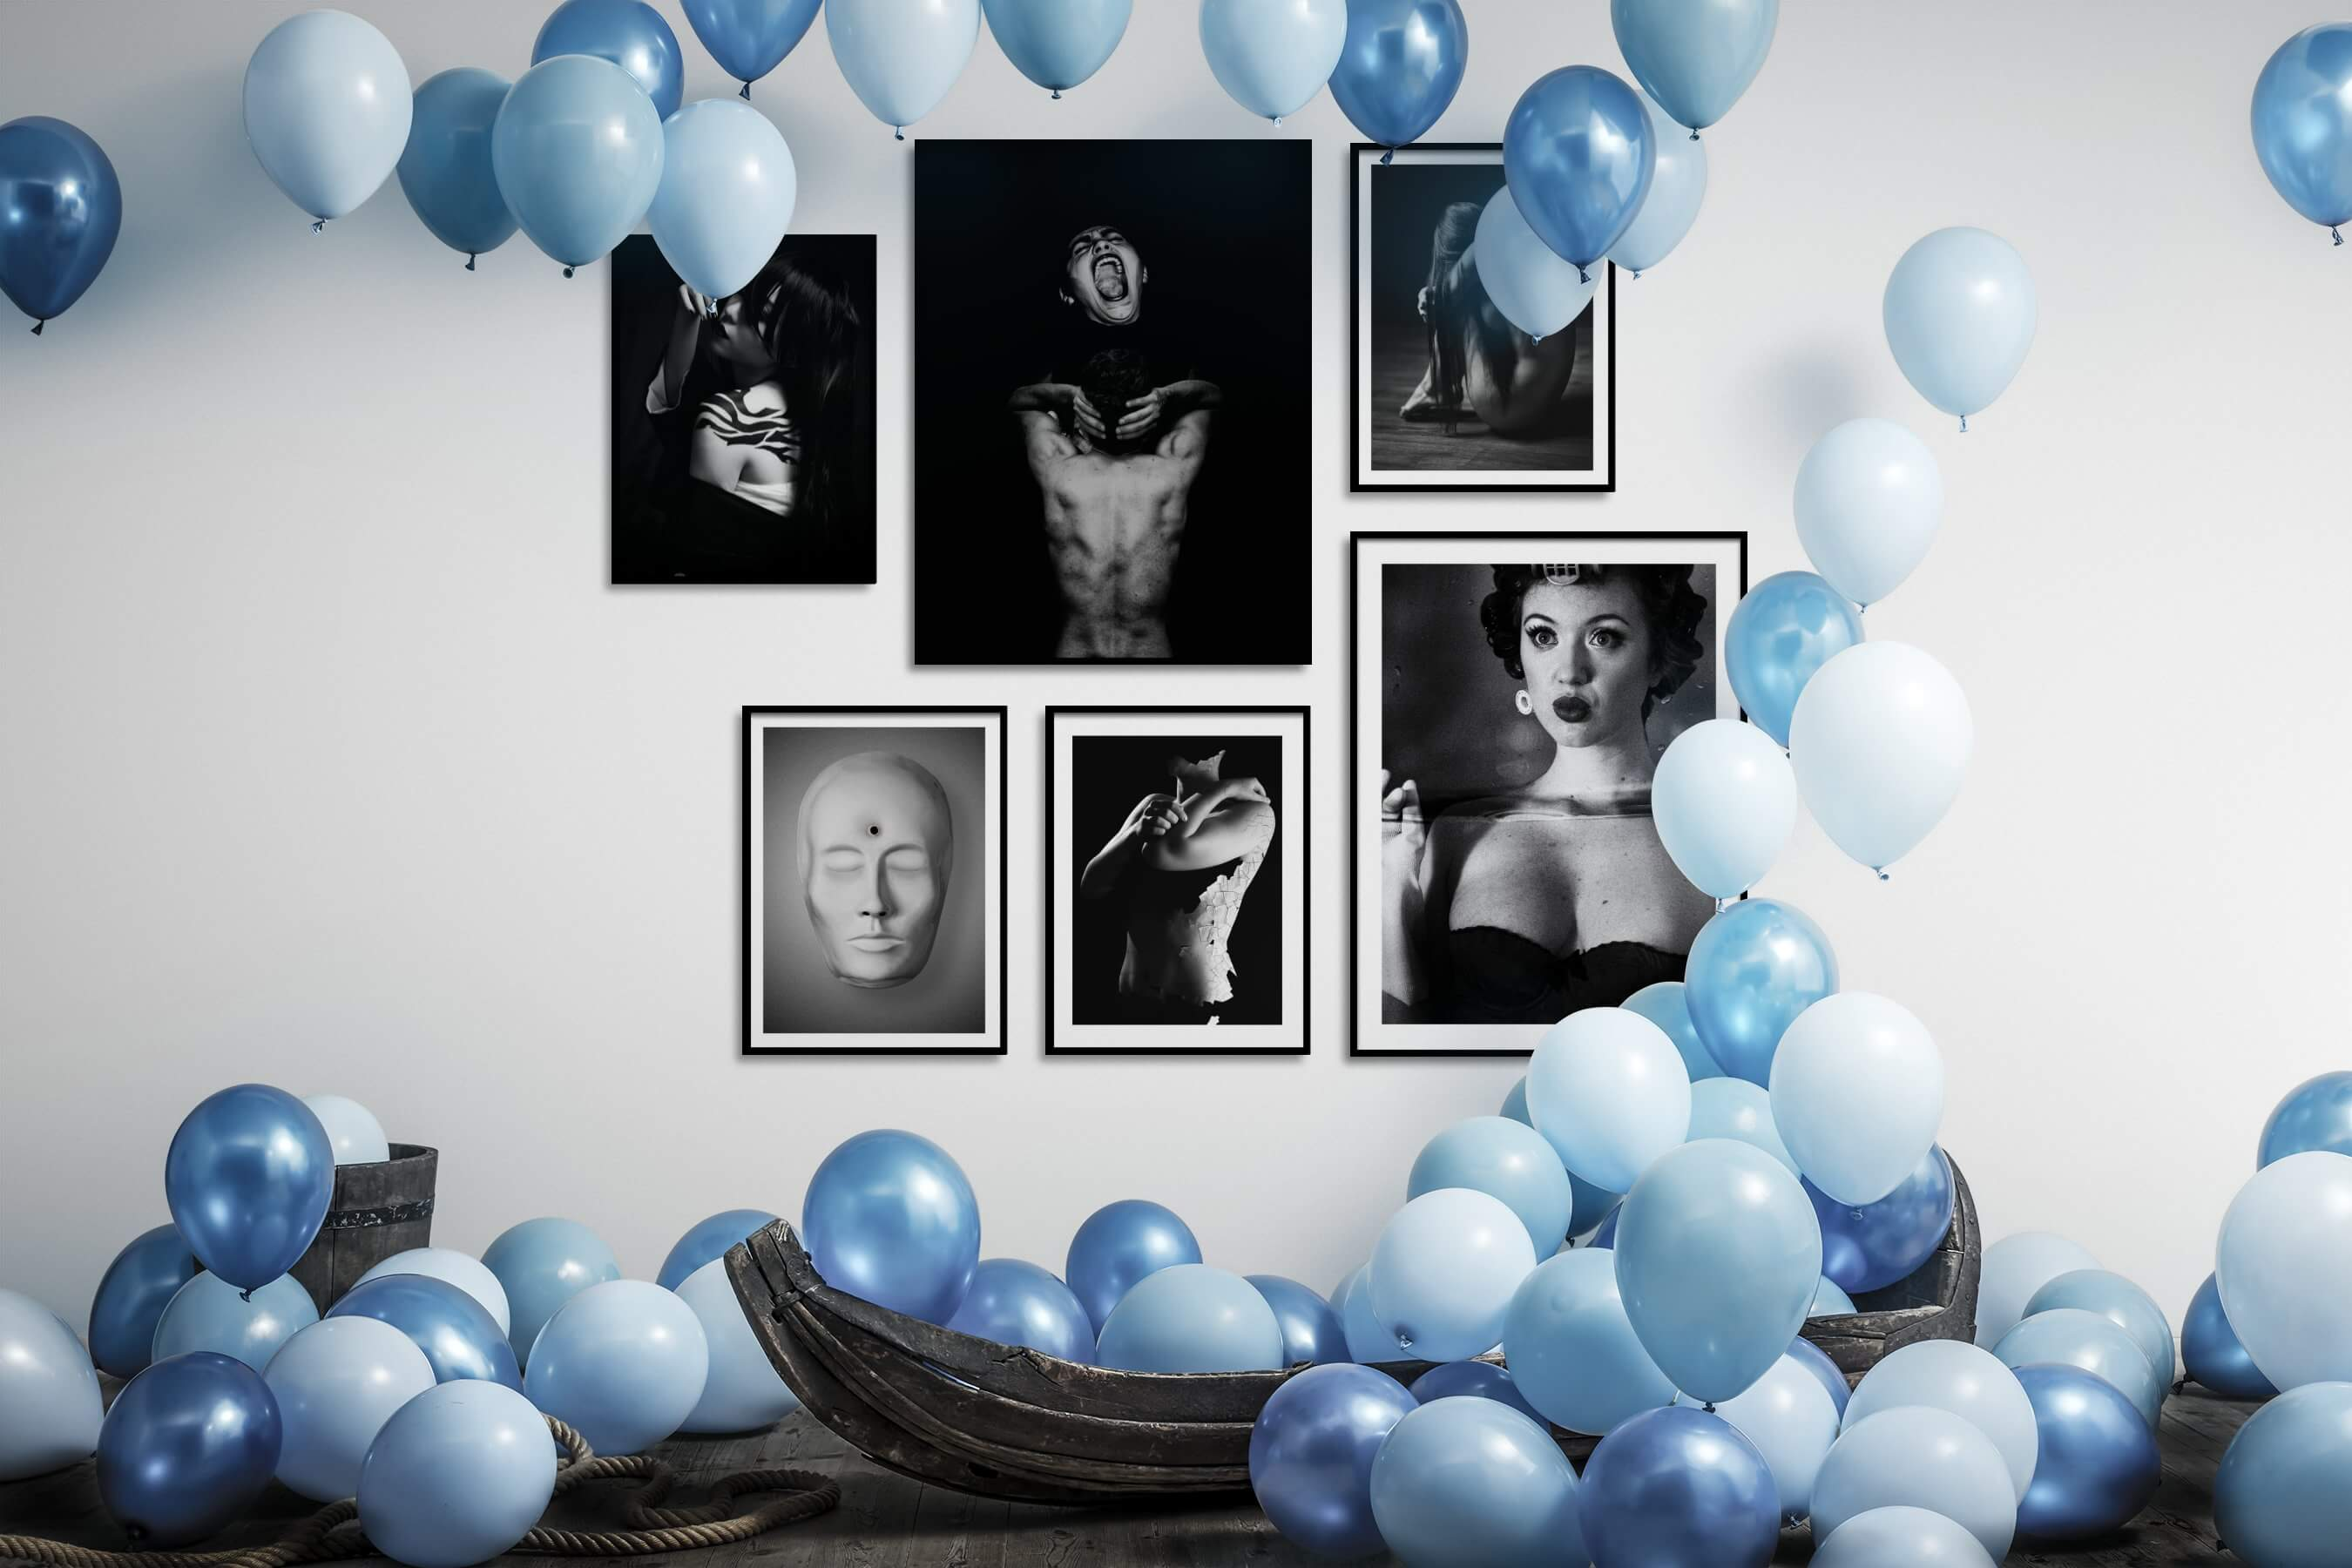 Gallery wall idea with six framed pictures arranged on a wall depicting Fashion & Beauty, Black & White, Dark Tones, Artsy, For the Minimalist, and Vintage